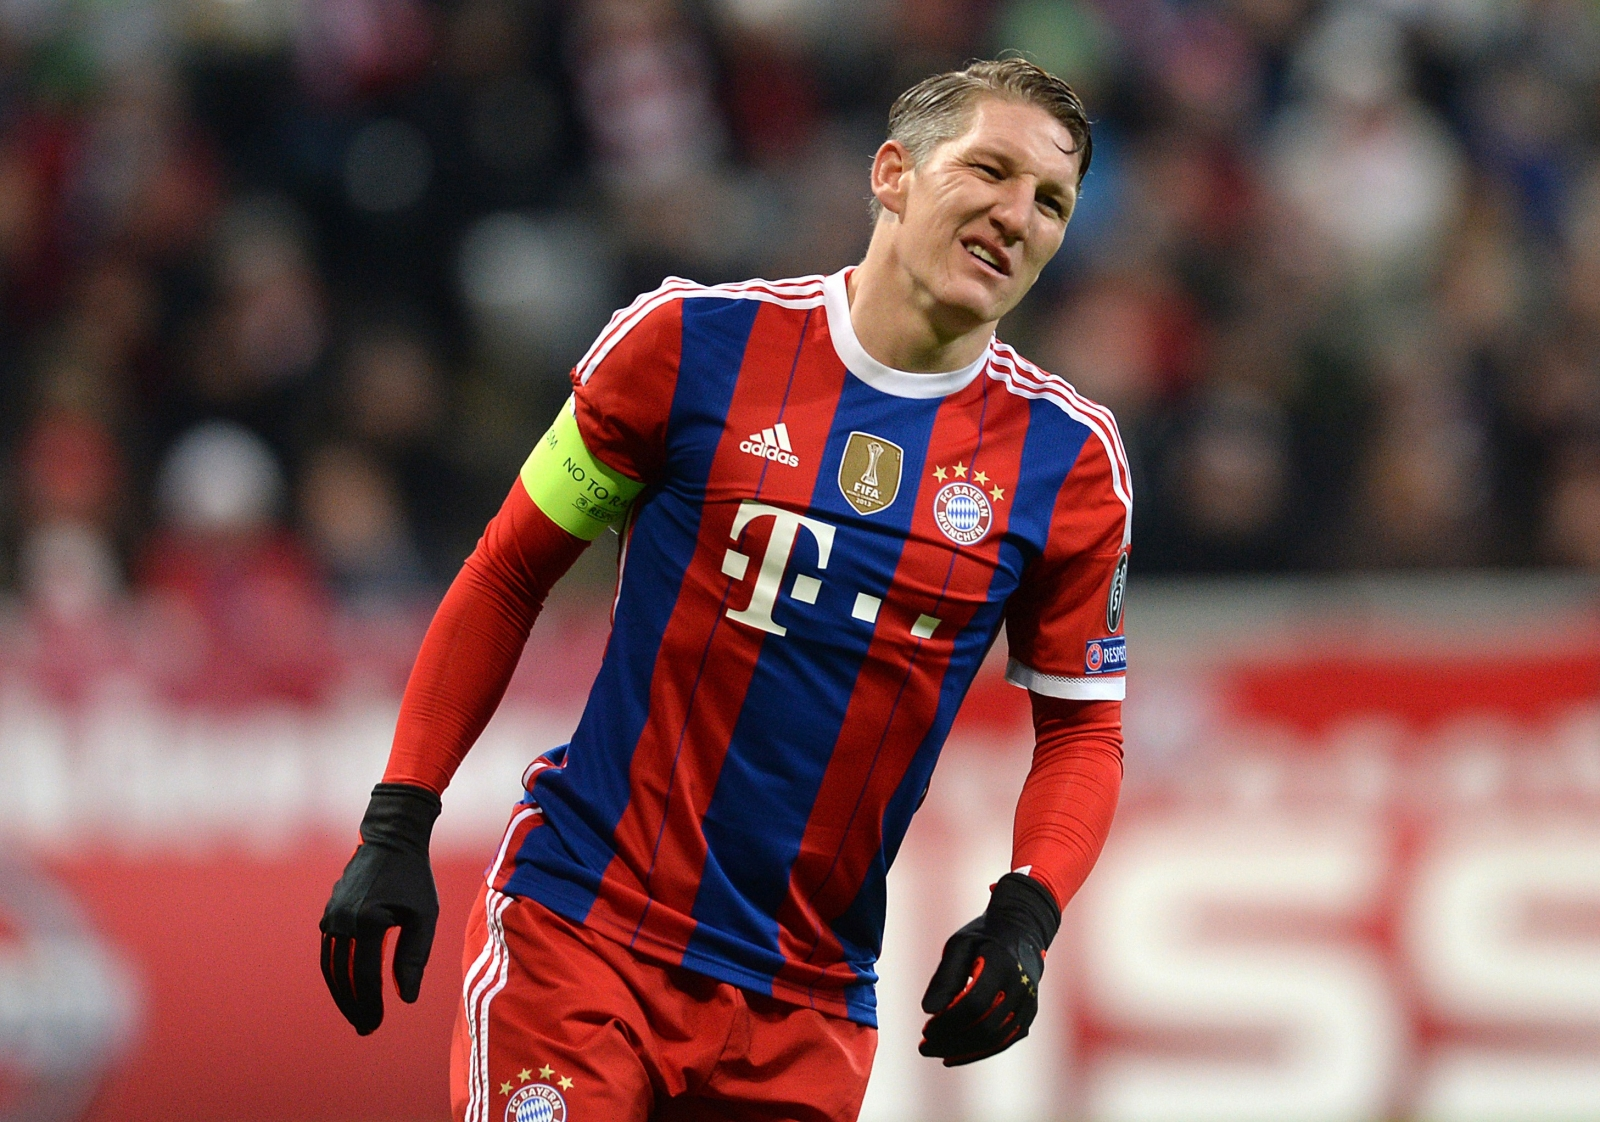 Manchester United Bastian Schweinsteiger regrets not saying a